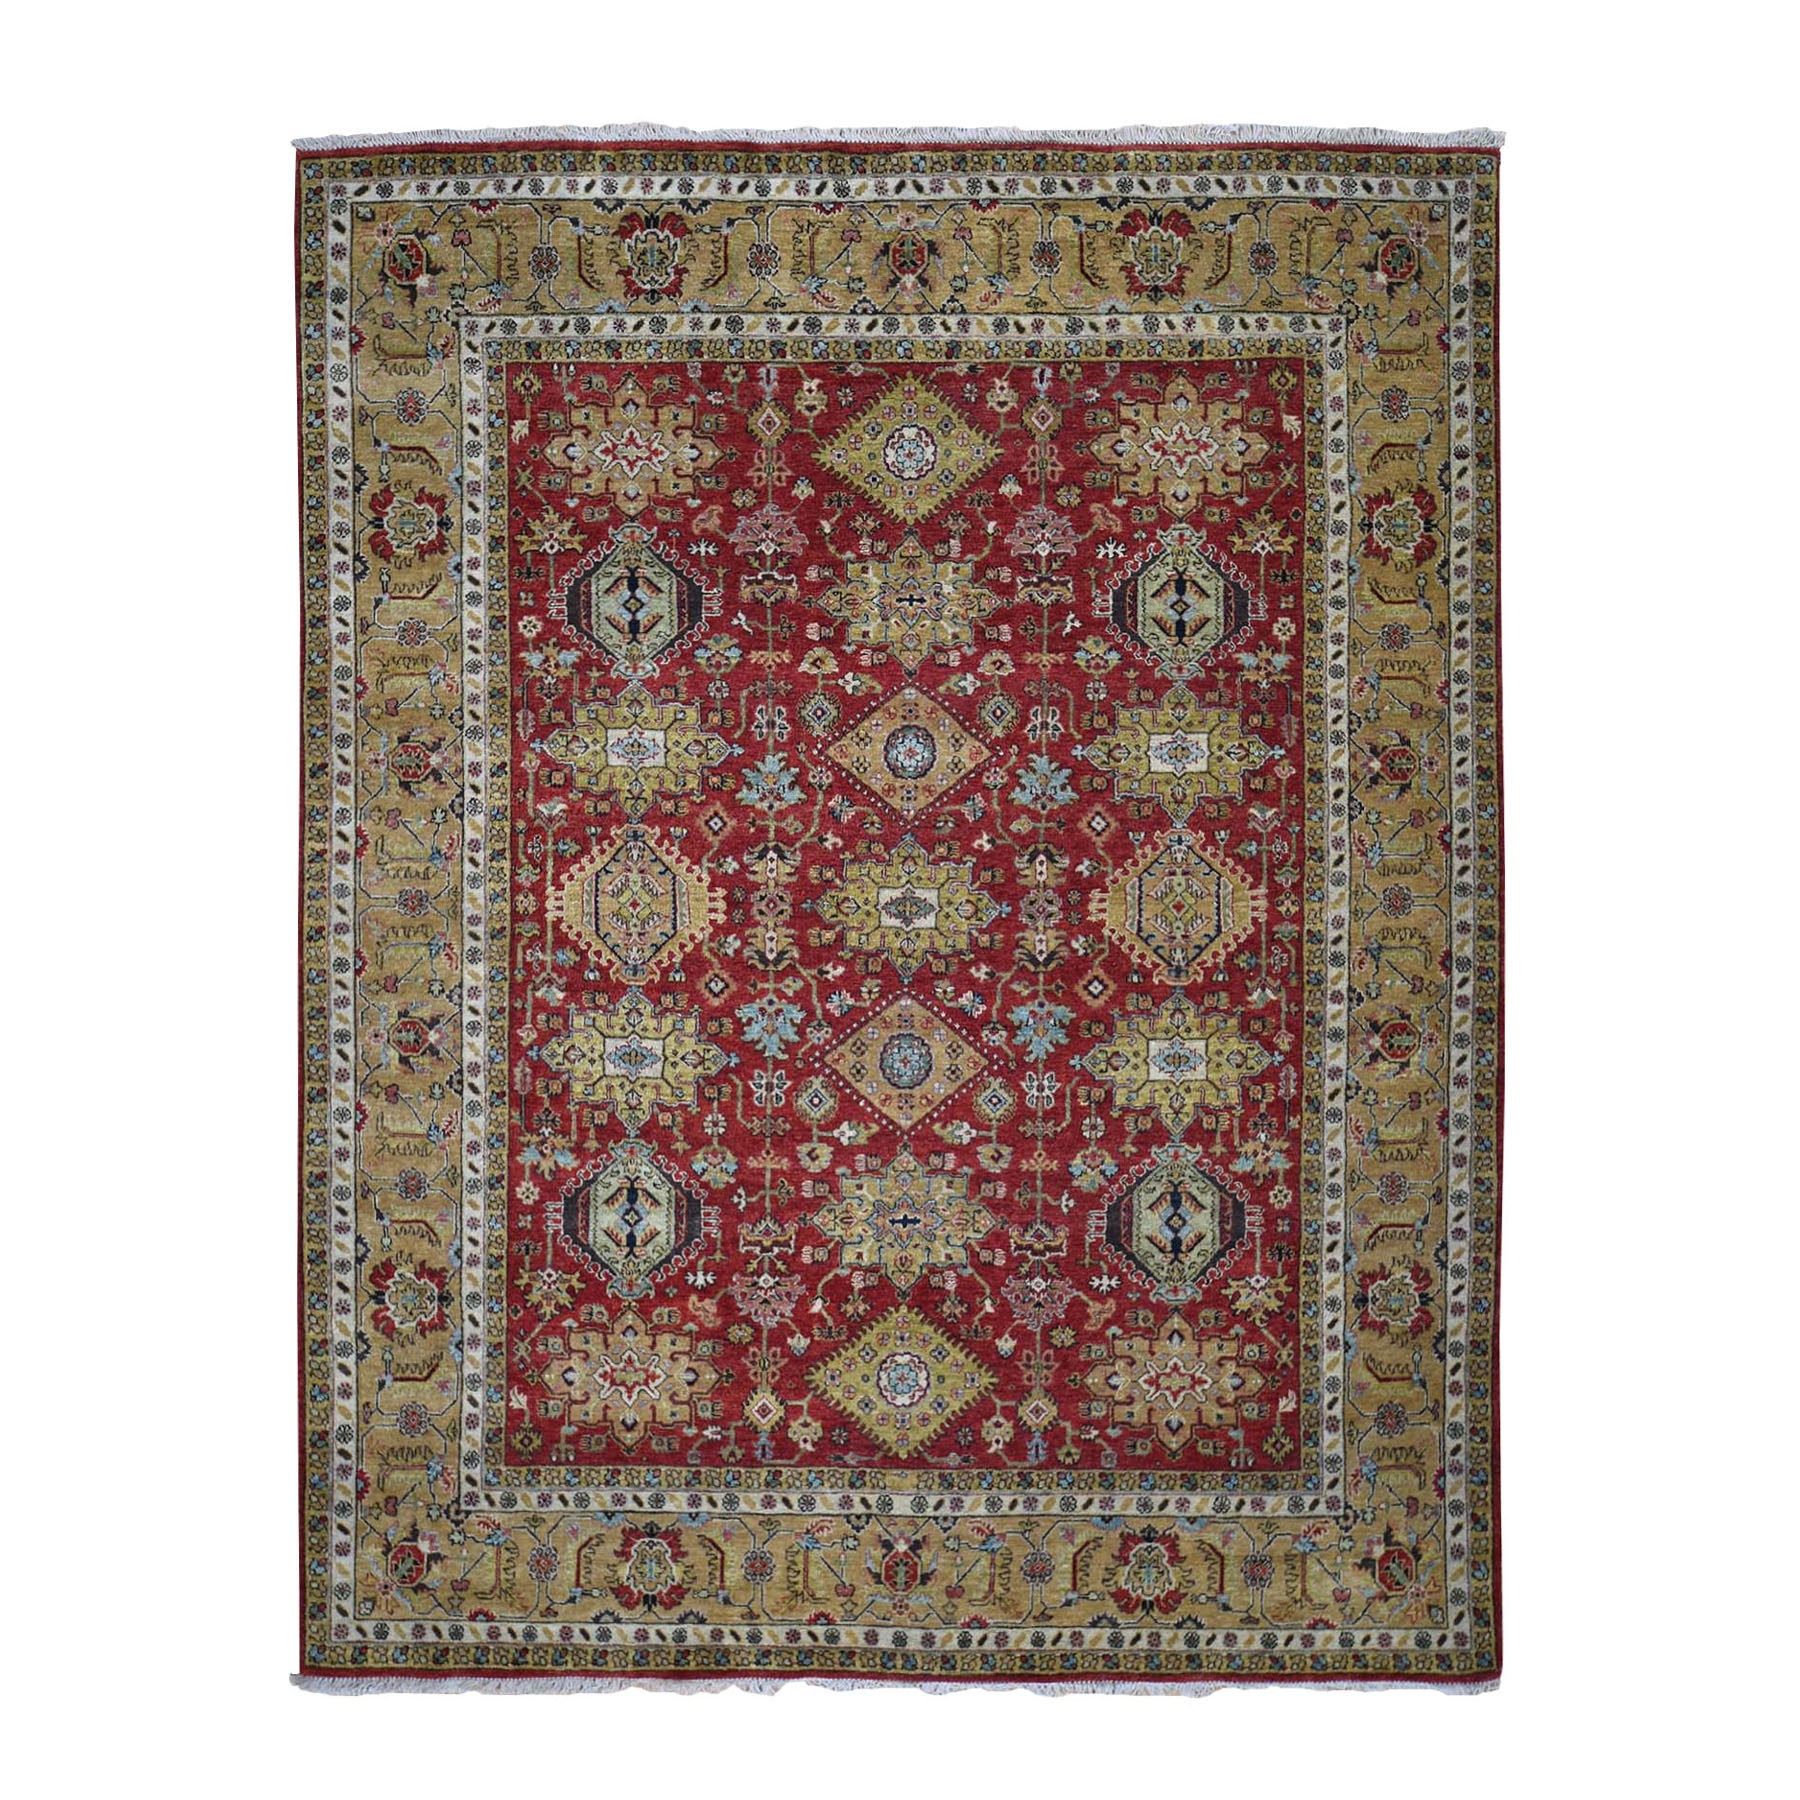 8'x10' Red Hand Knotted Karajeh Design Pure Wool Oriental Rug